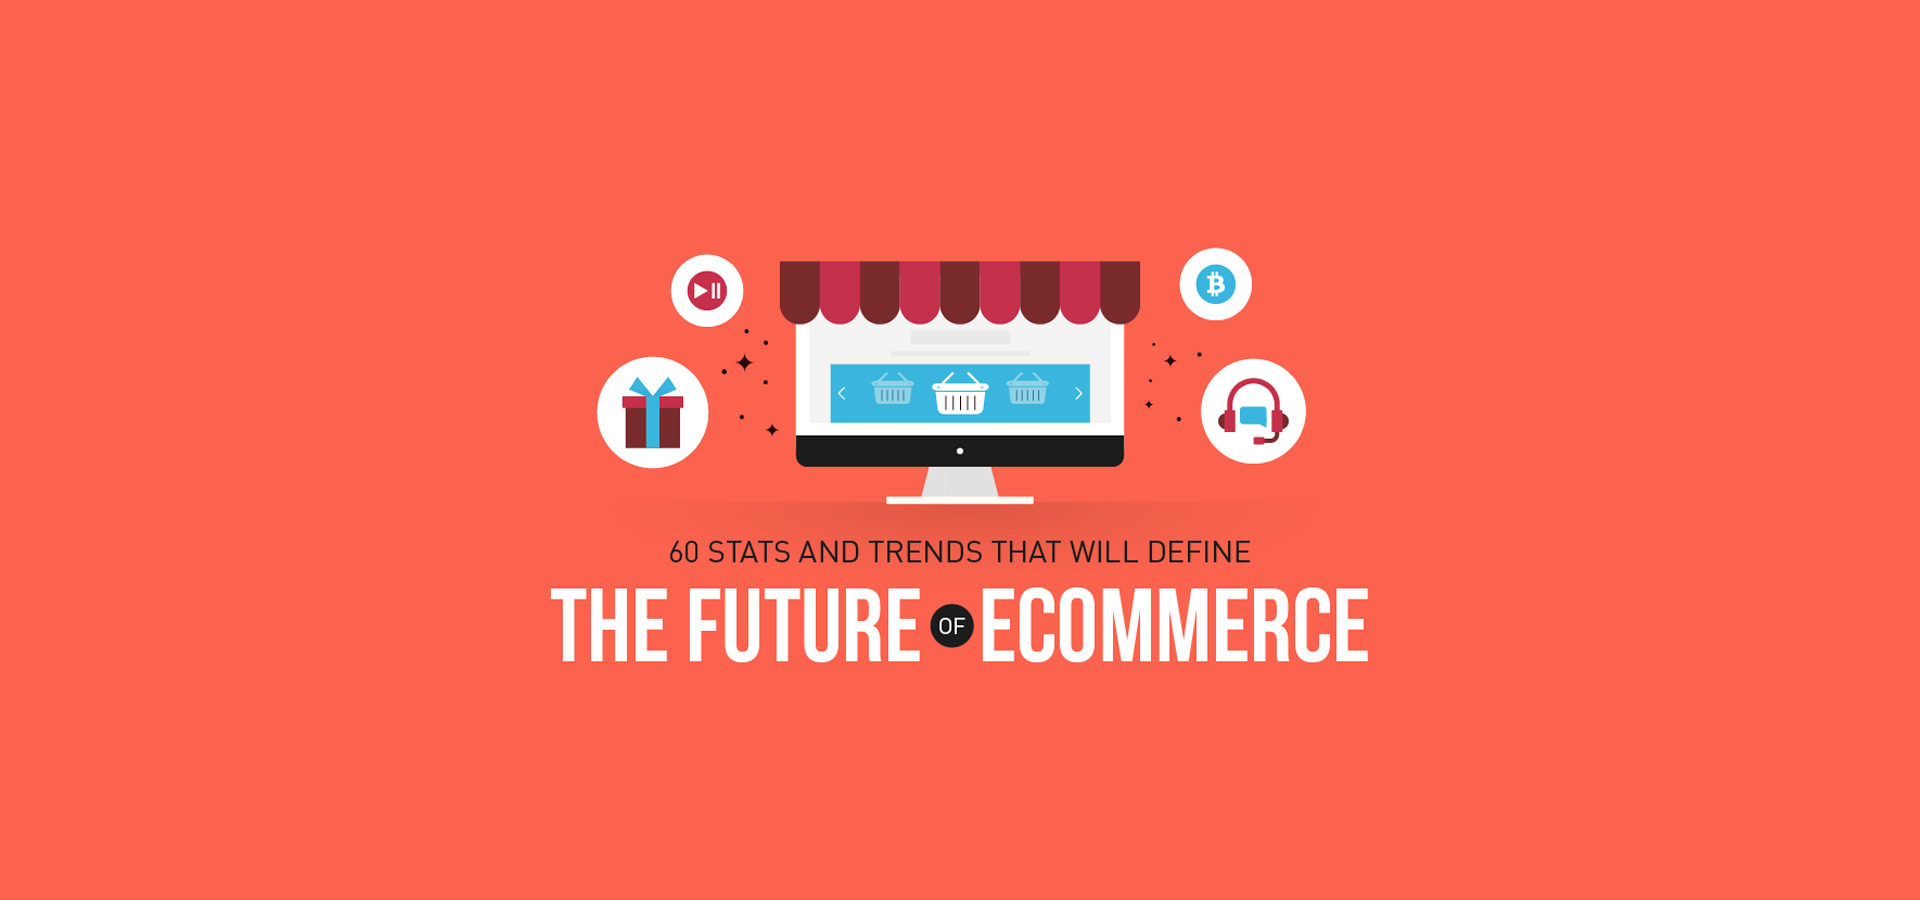 State of affairs revealed for e-commerce (infographic)